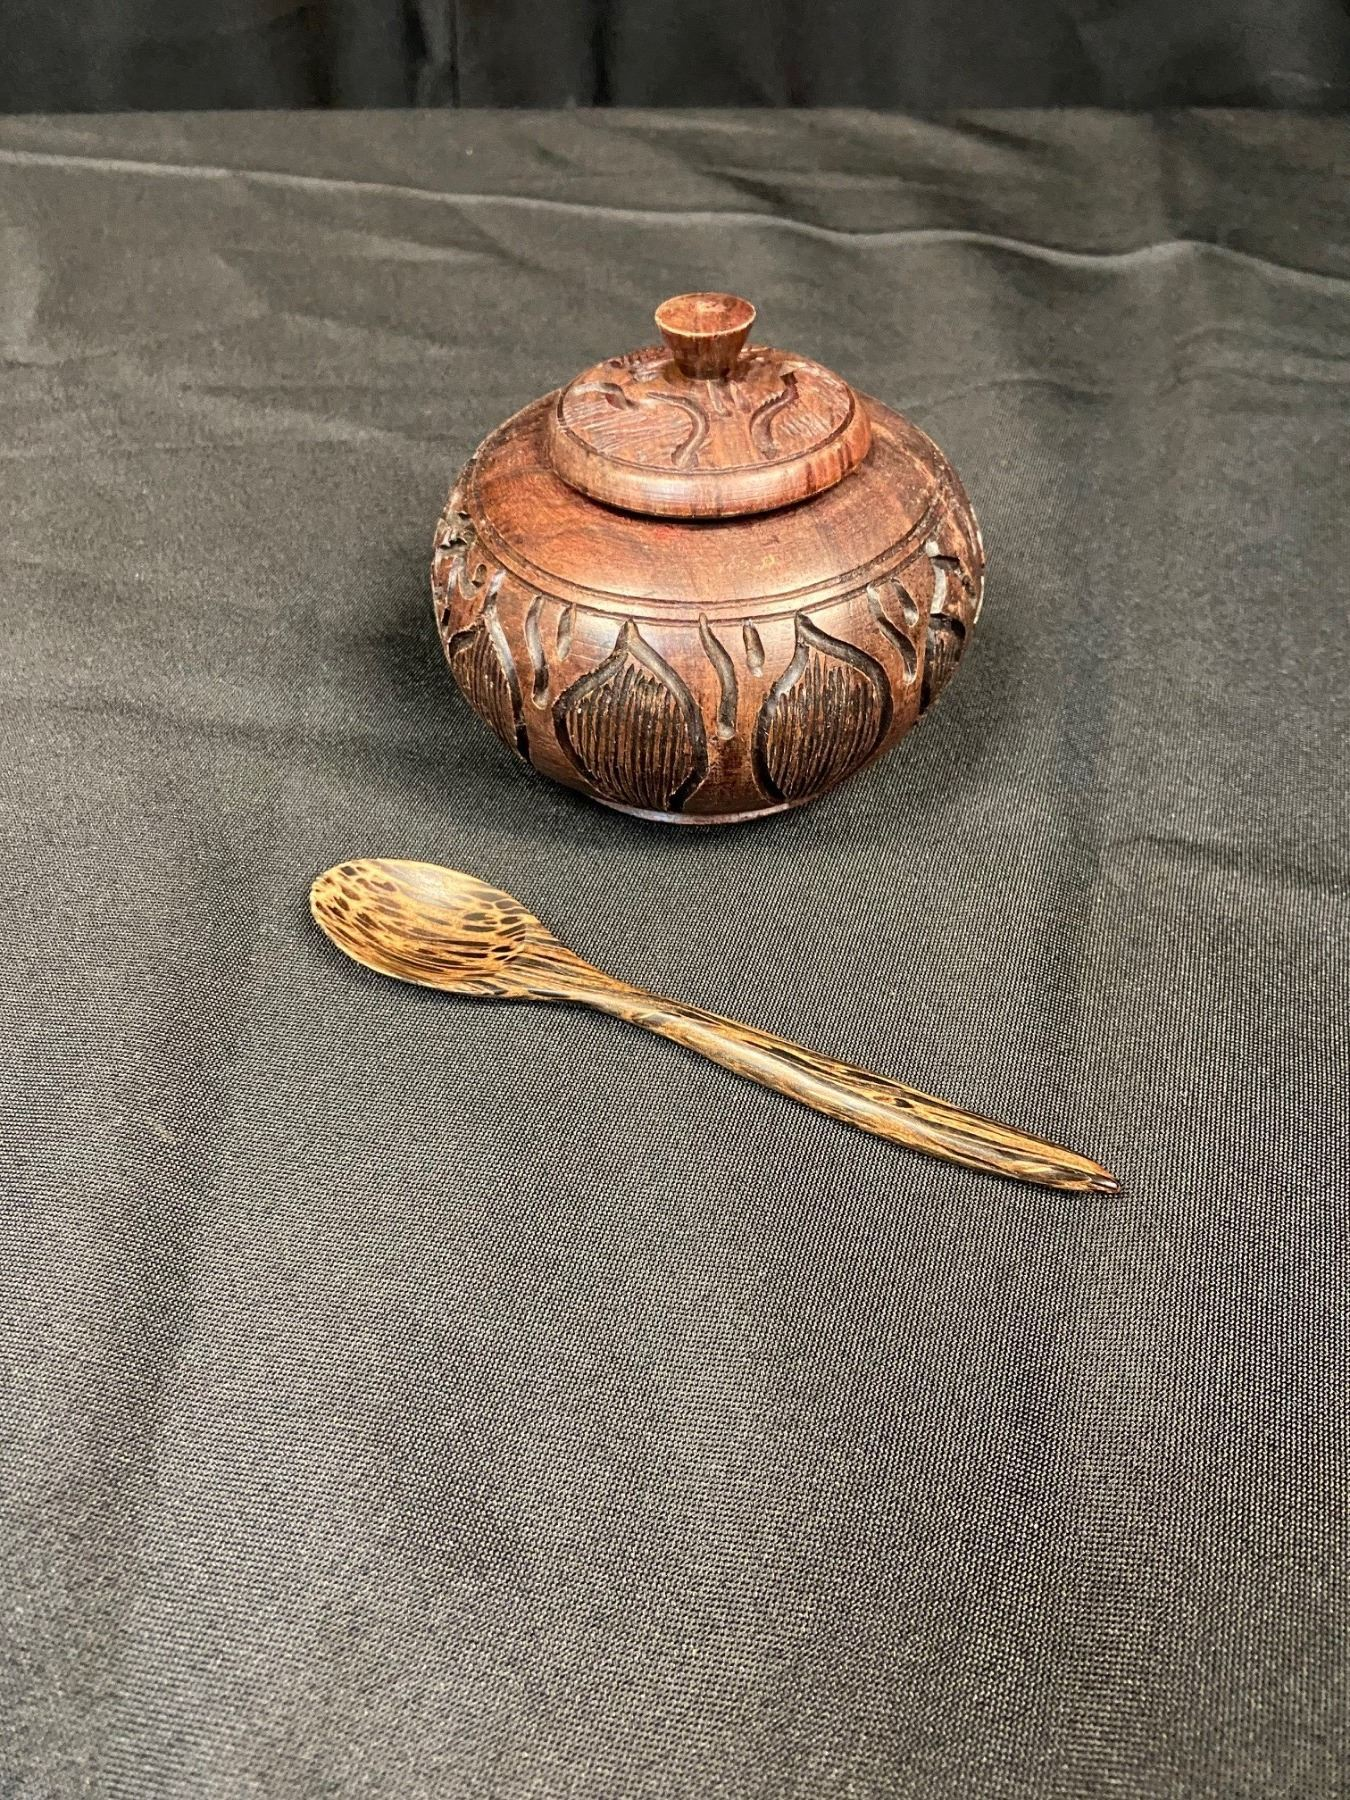 African Wooden Dish & Spoon